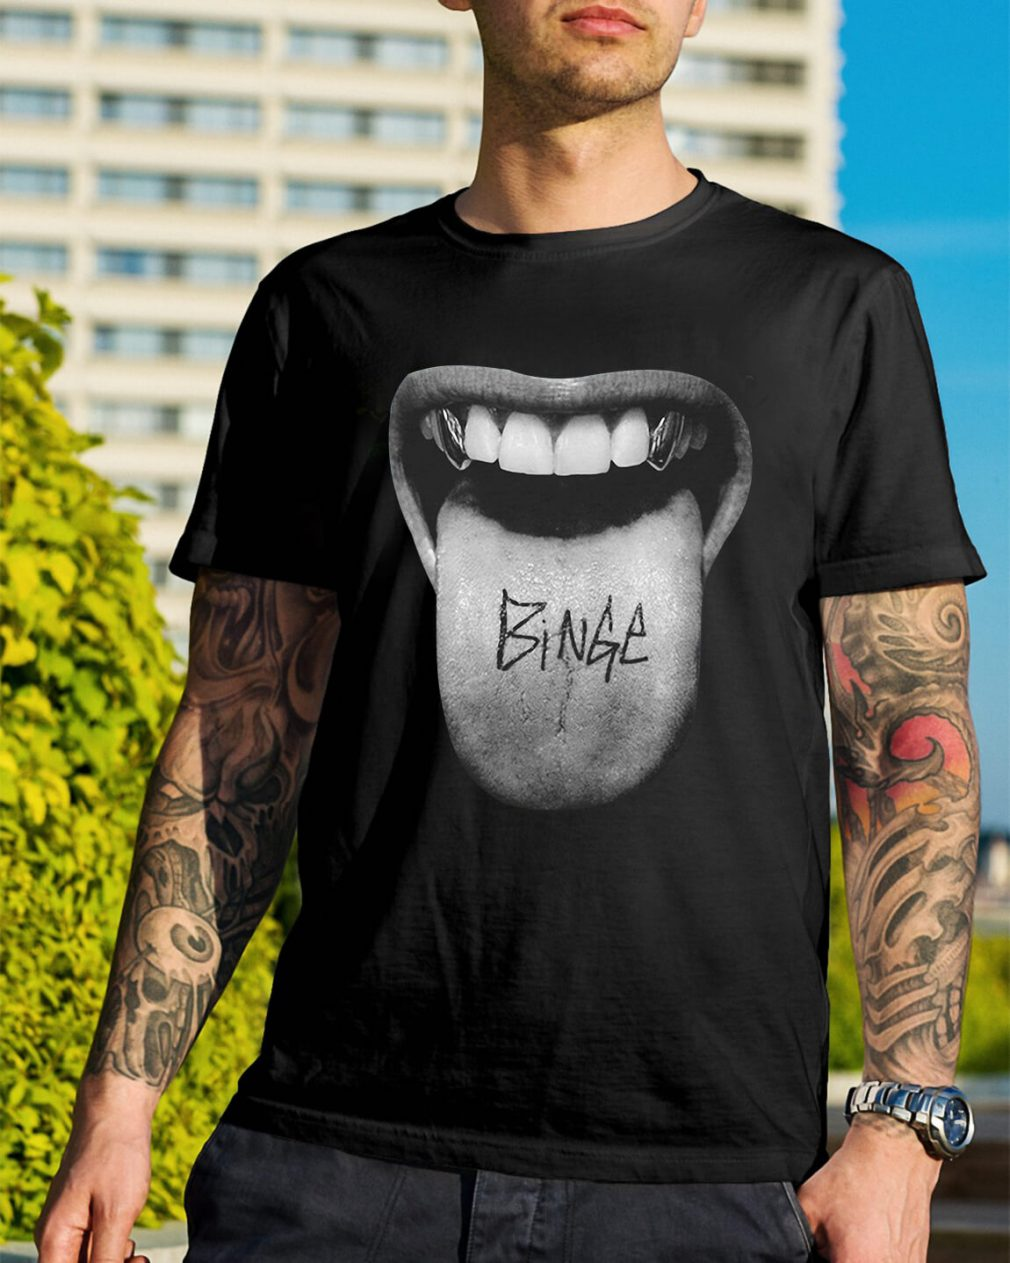 Official Binge Tongue shirt